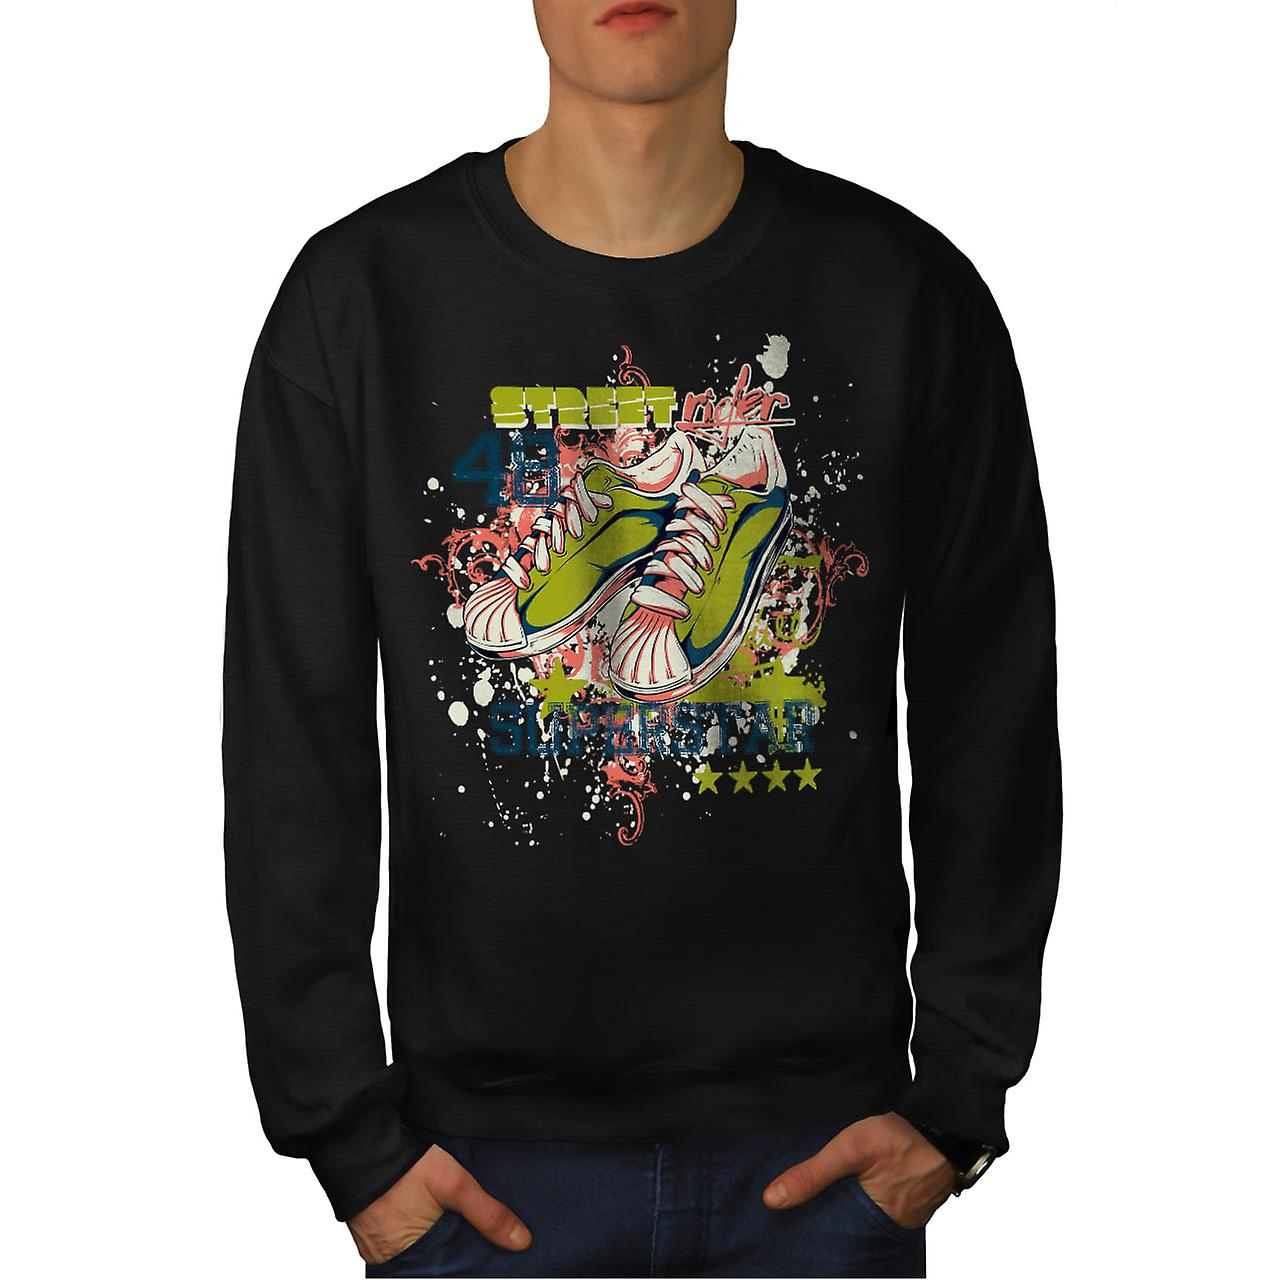 Street Rider Super Star Shoes Men Black Sweatshirt | Wellcoda